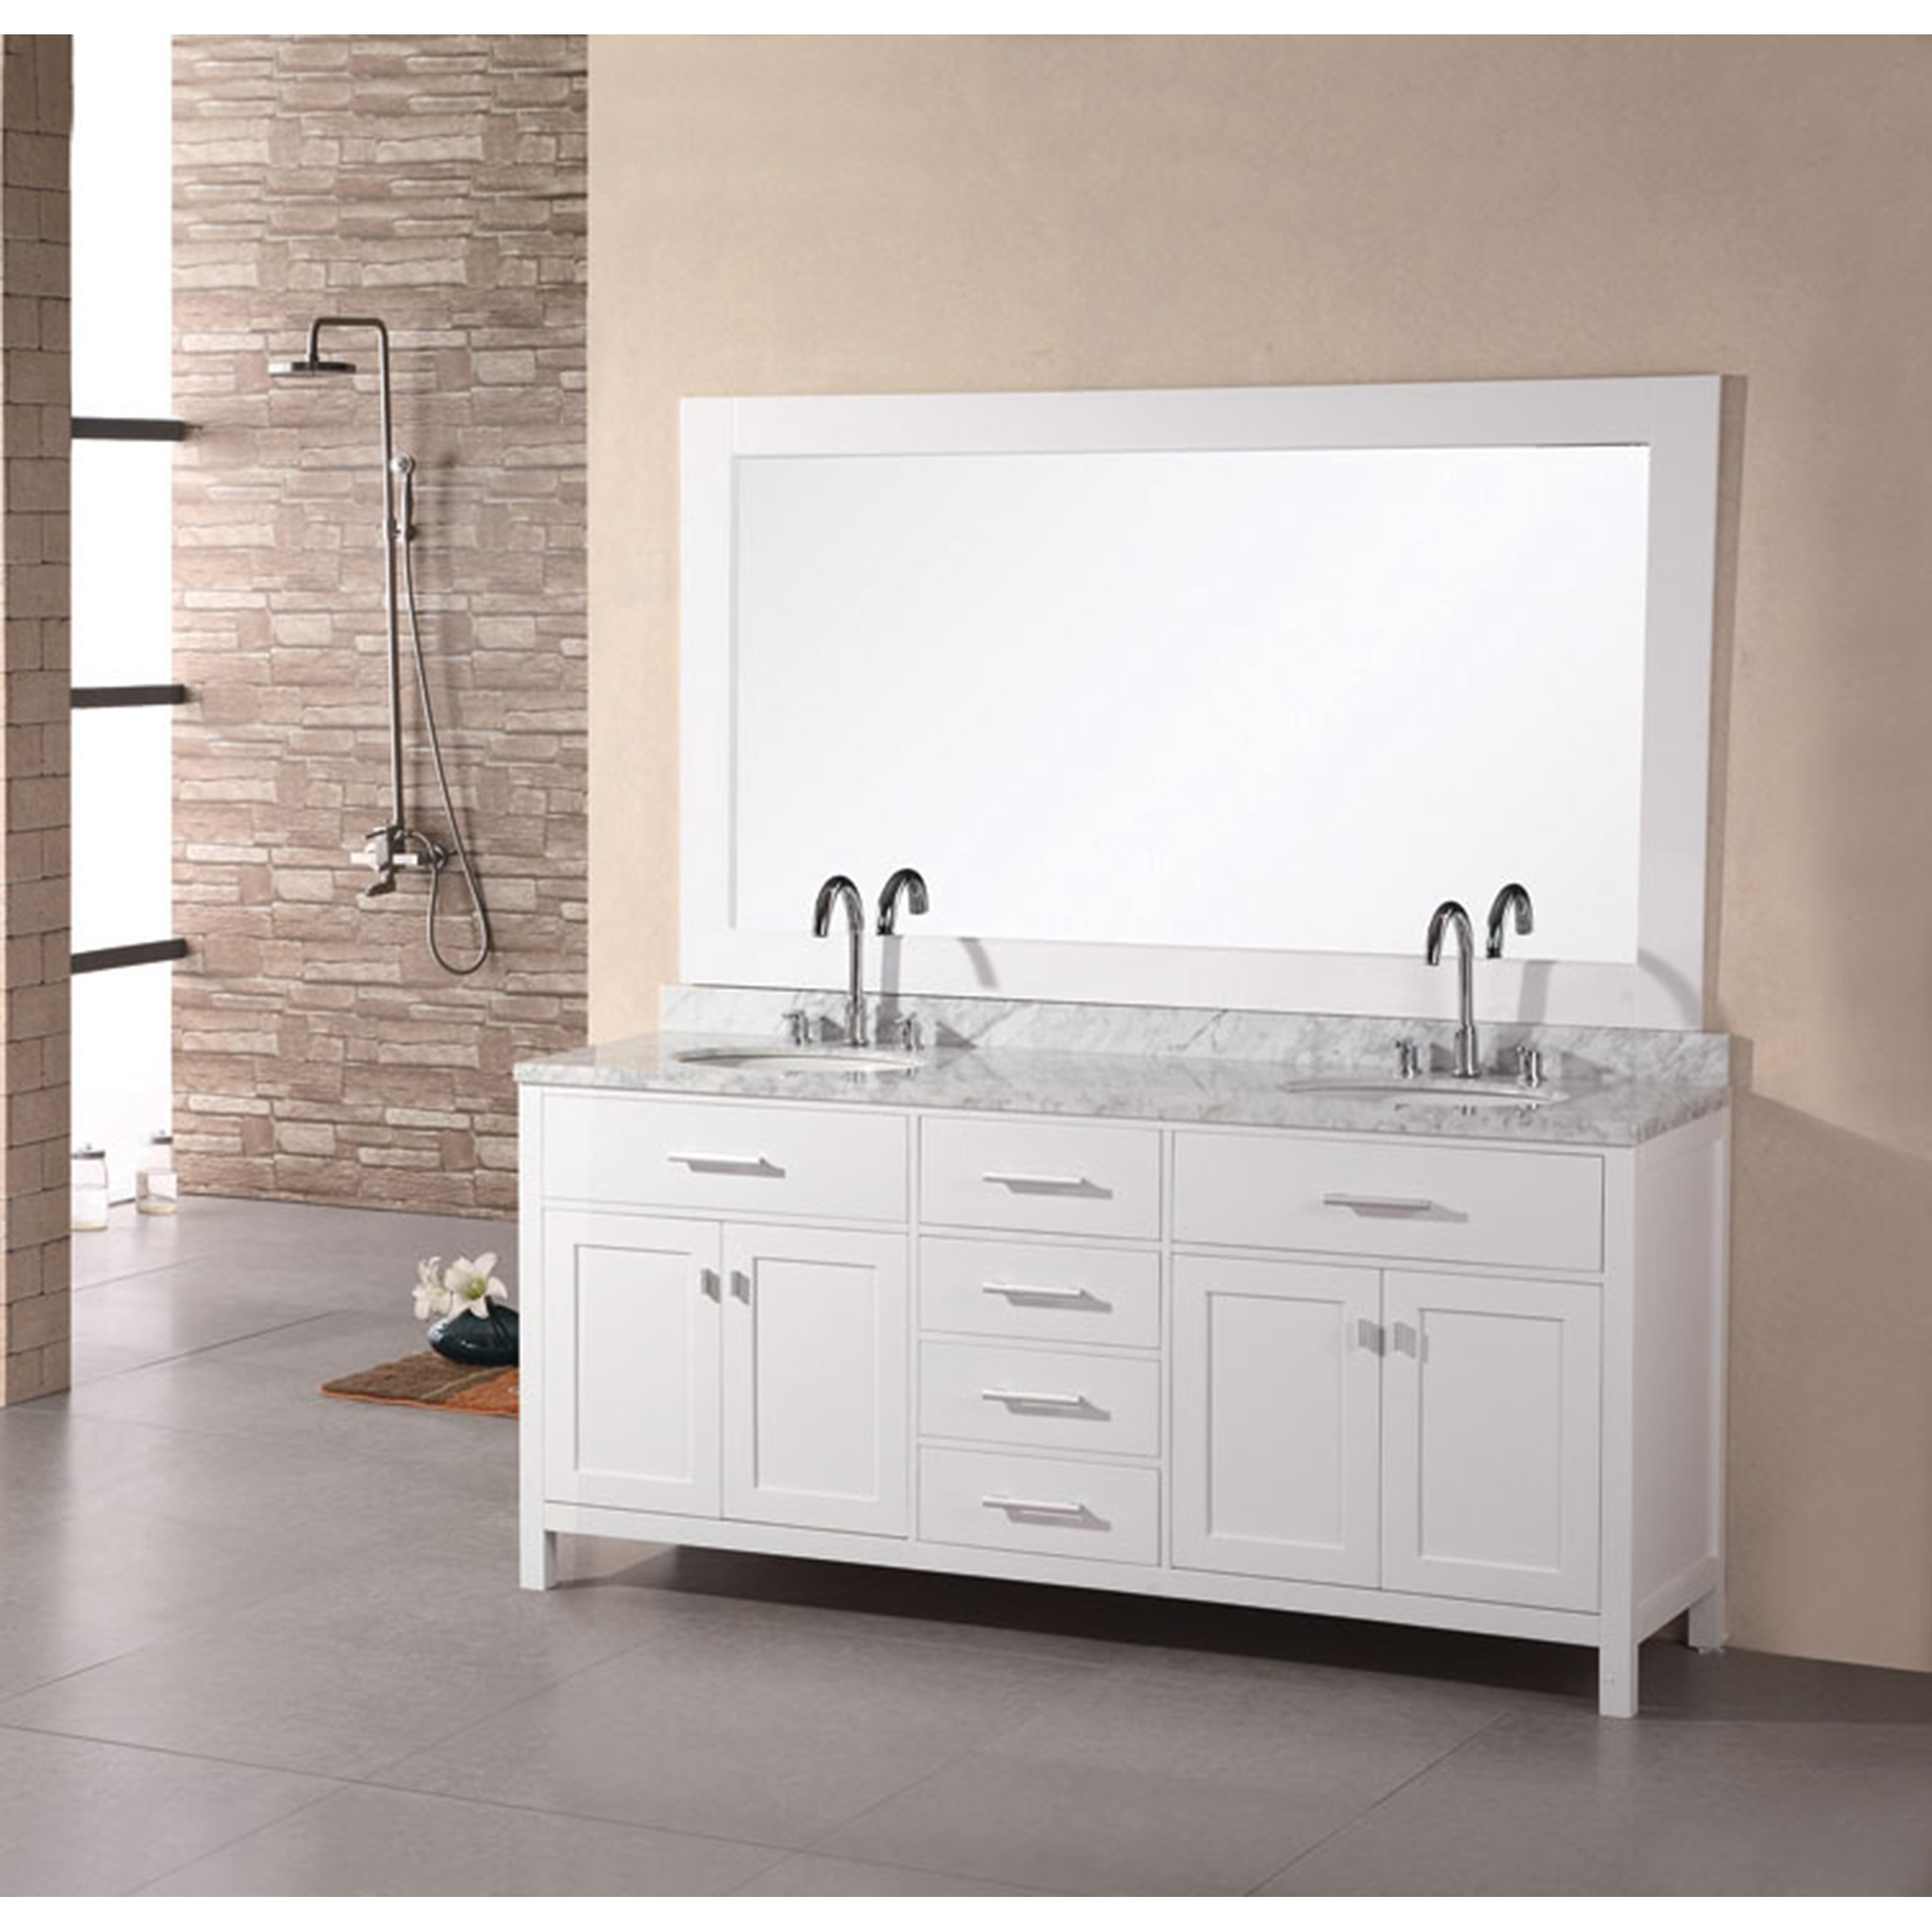 Shop design element london 72 inch white double sink bathroom vanity free shipping today overstock com 5266339